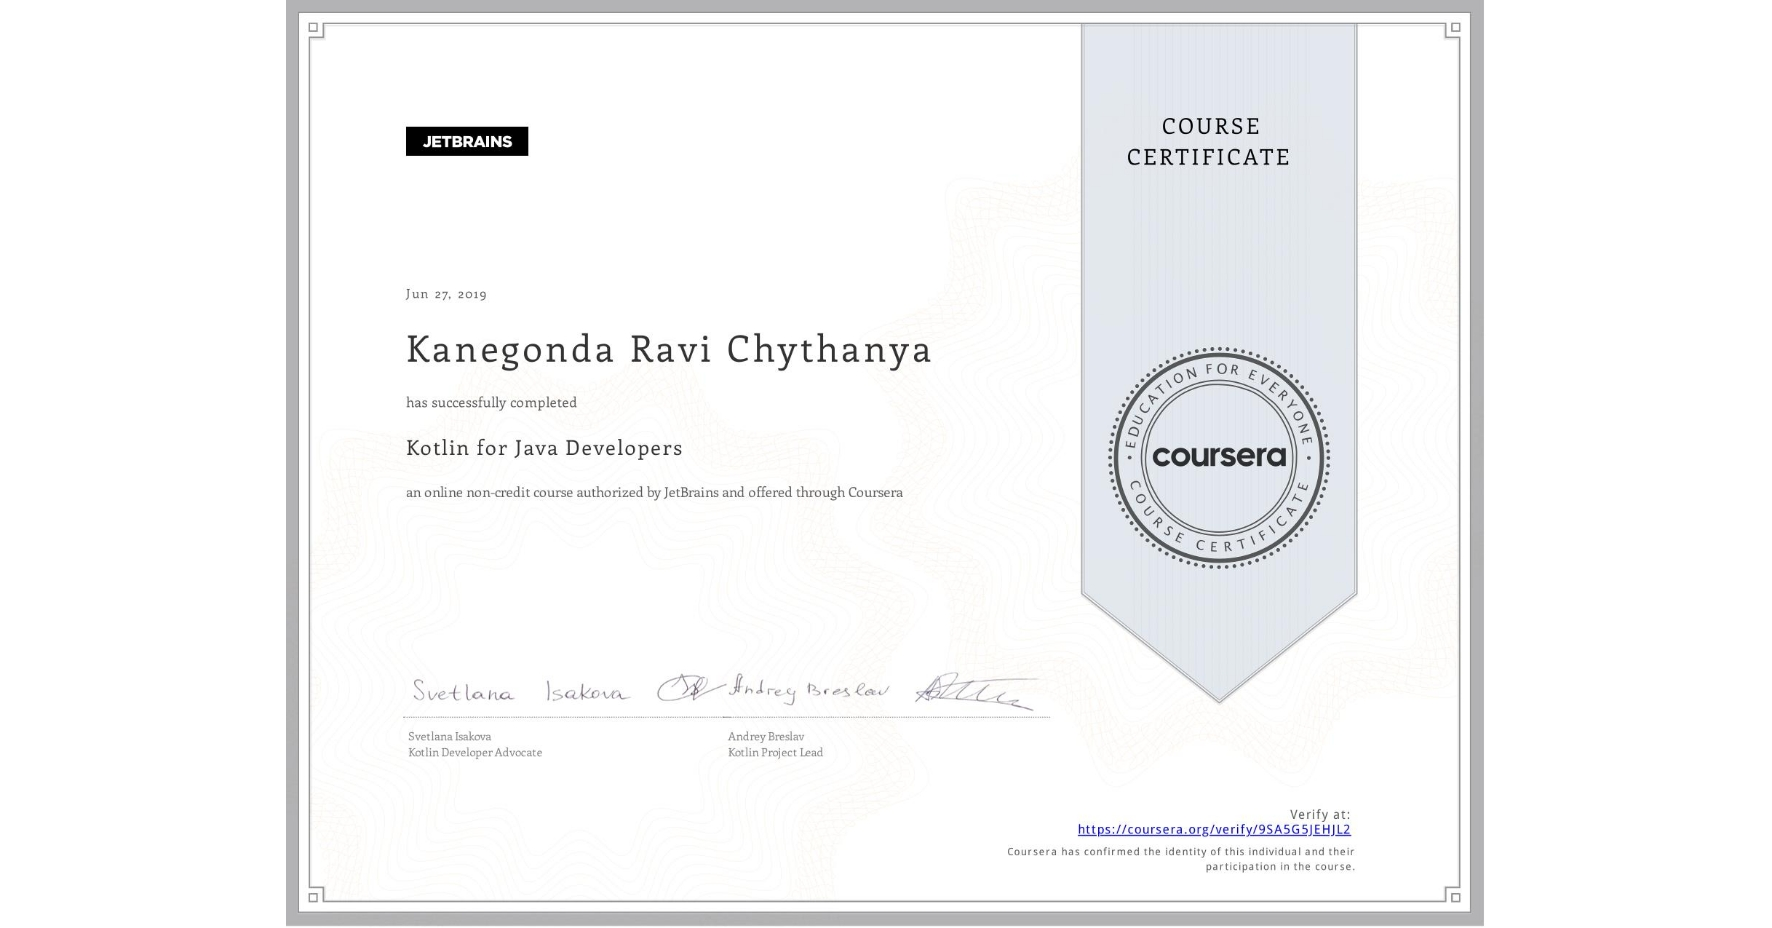 View certificate for Kanegonda Ravi Chythanya, Kotlin for Java Developers, an online non-credit course authorized by JetBrains and offered through Coursera